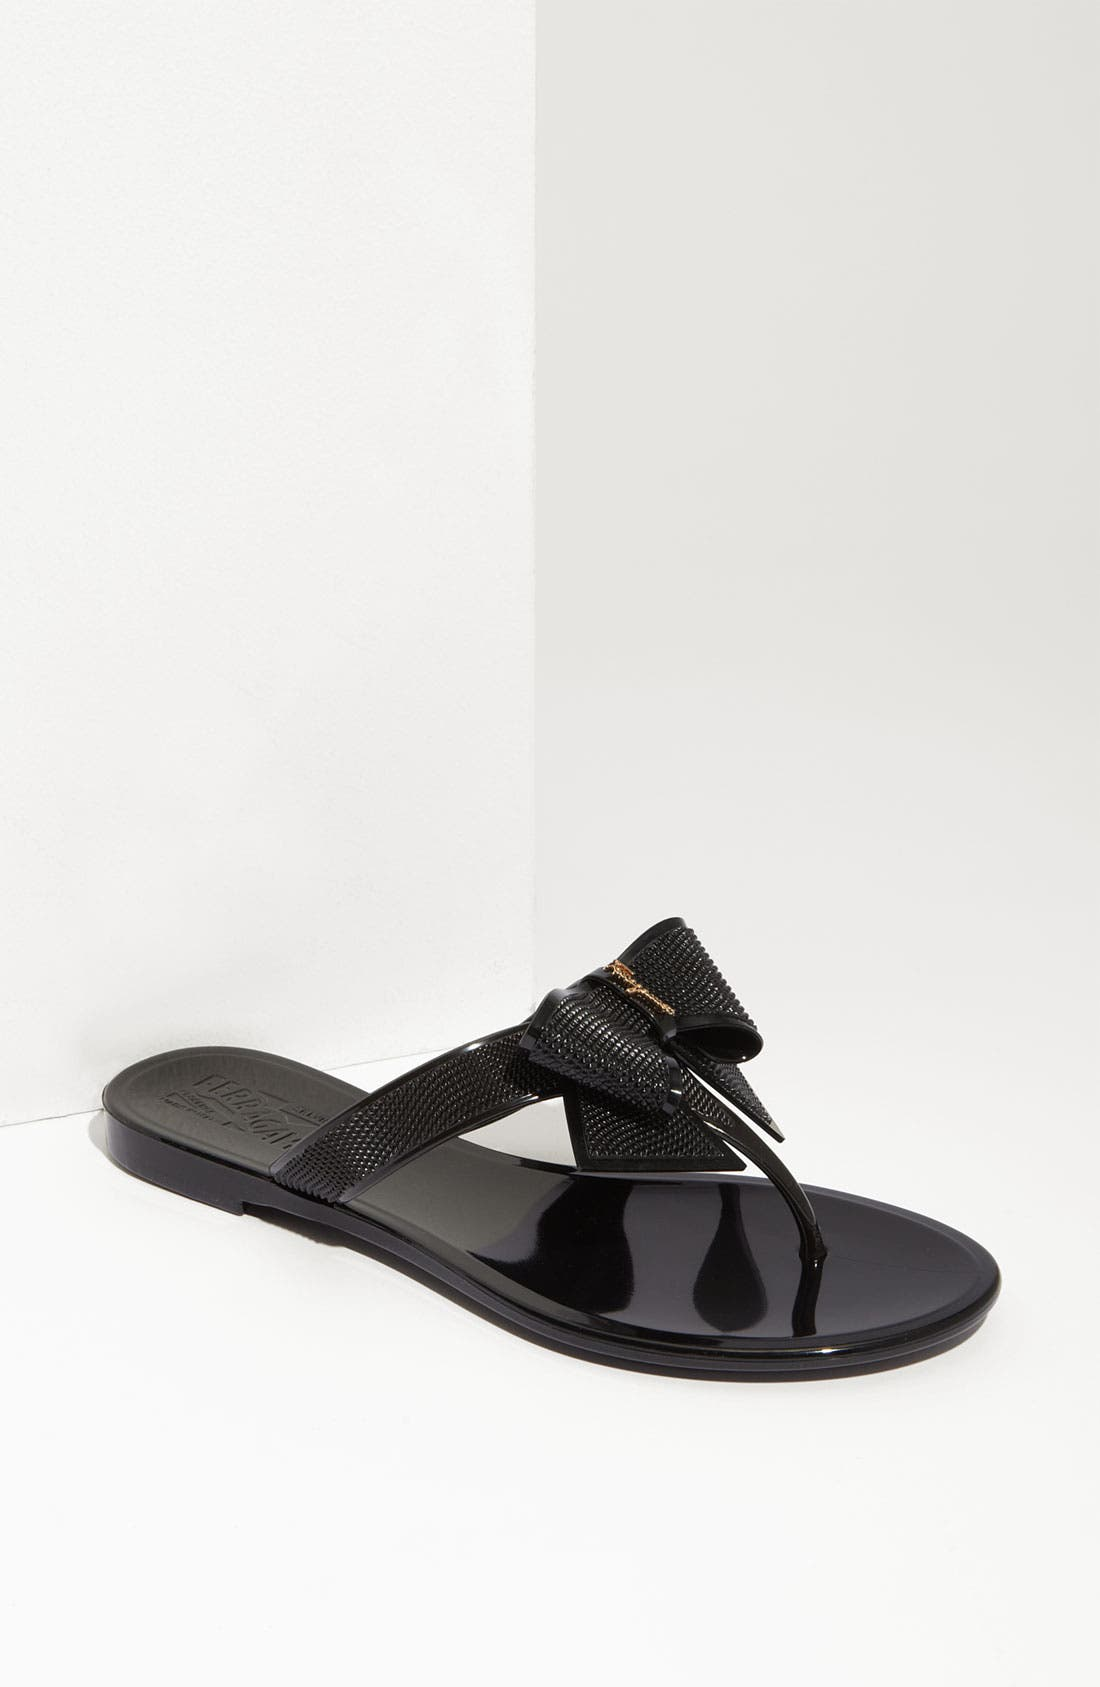 Alternate Image 1 Selected - Salvatore Ferragamo 'Bali' Sandal